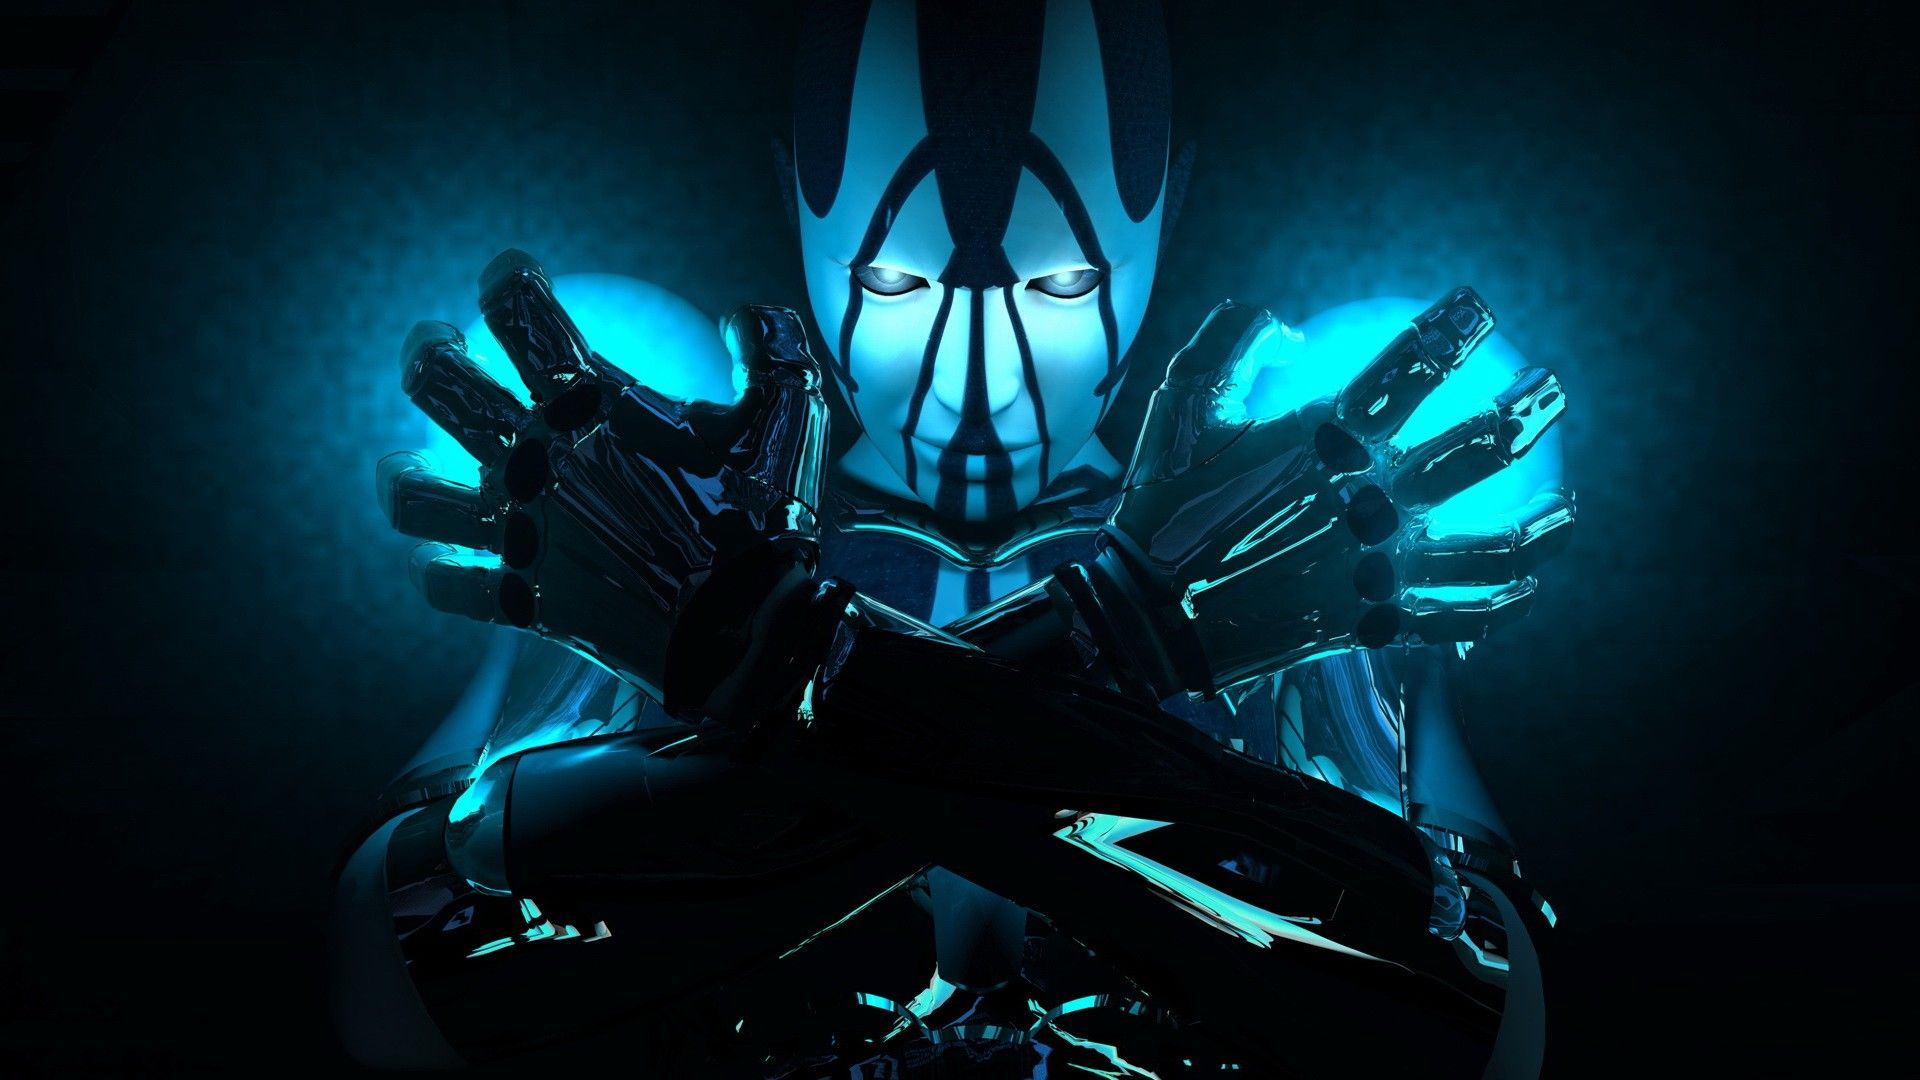 Blue Robot Cyborg Futuristic 3d Wallpaper Background Fond Ecran Hd Fond Ecran Images